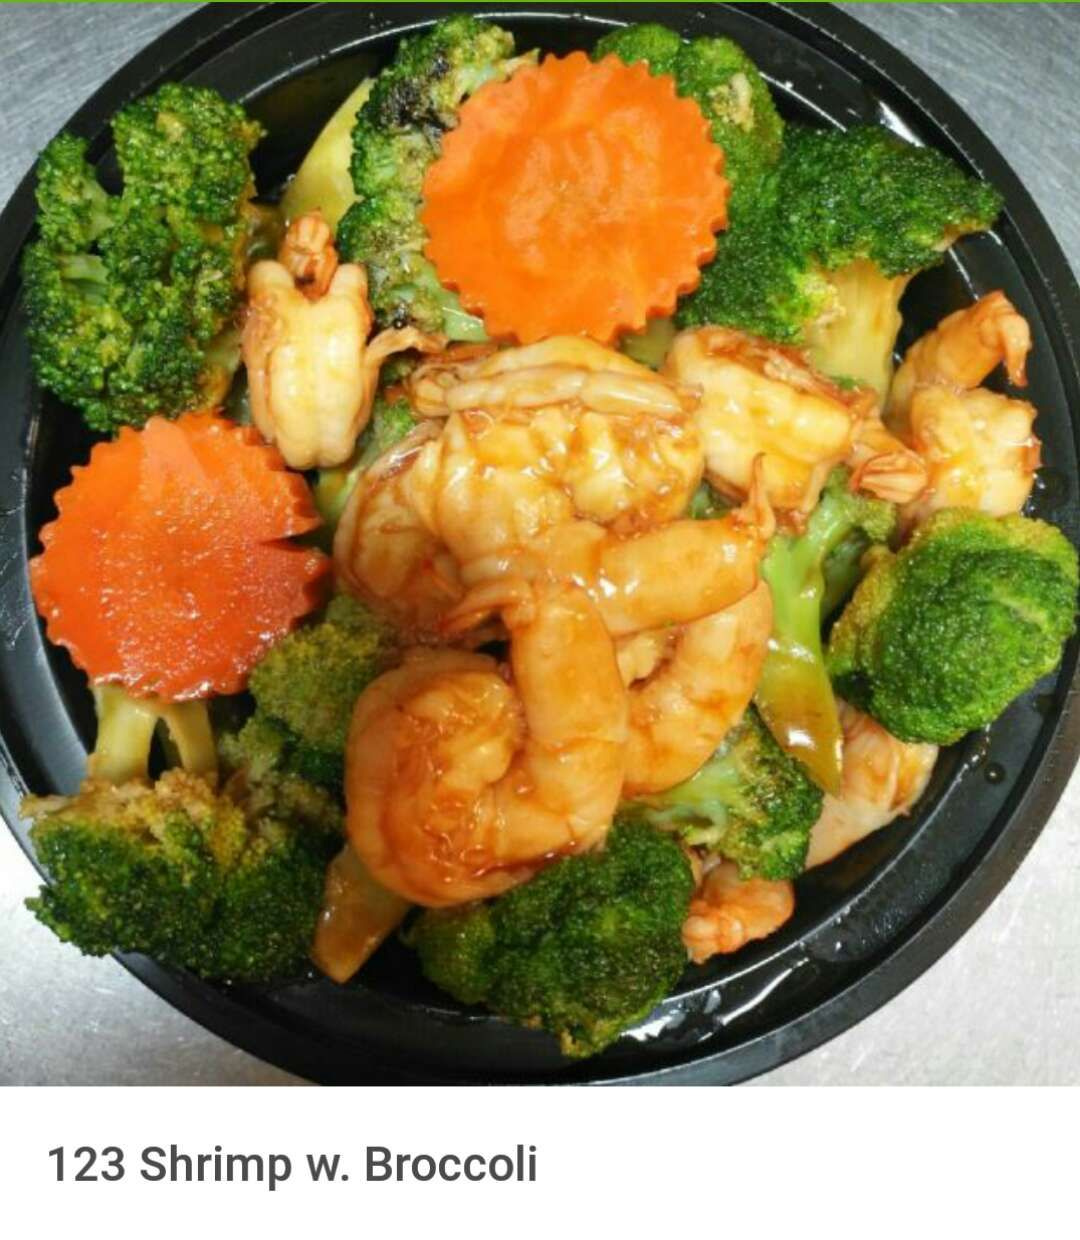 123. Shrimp w. Broccoli Image